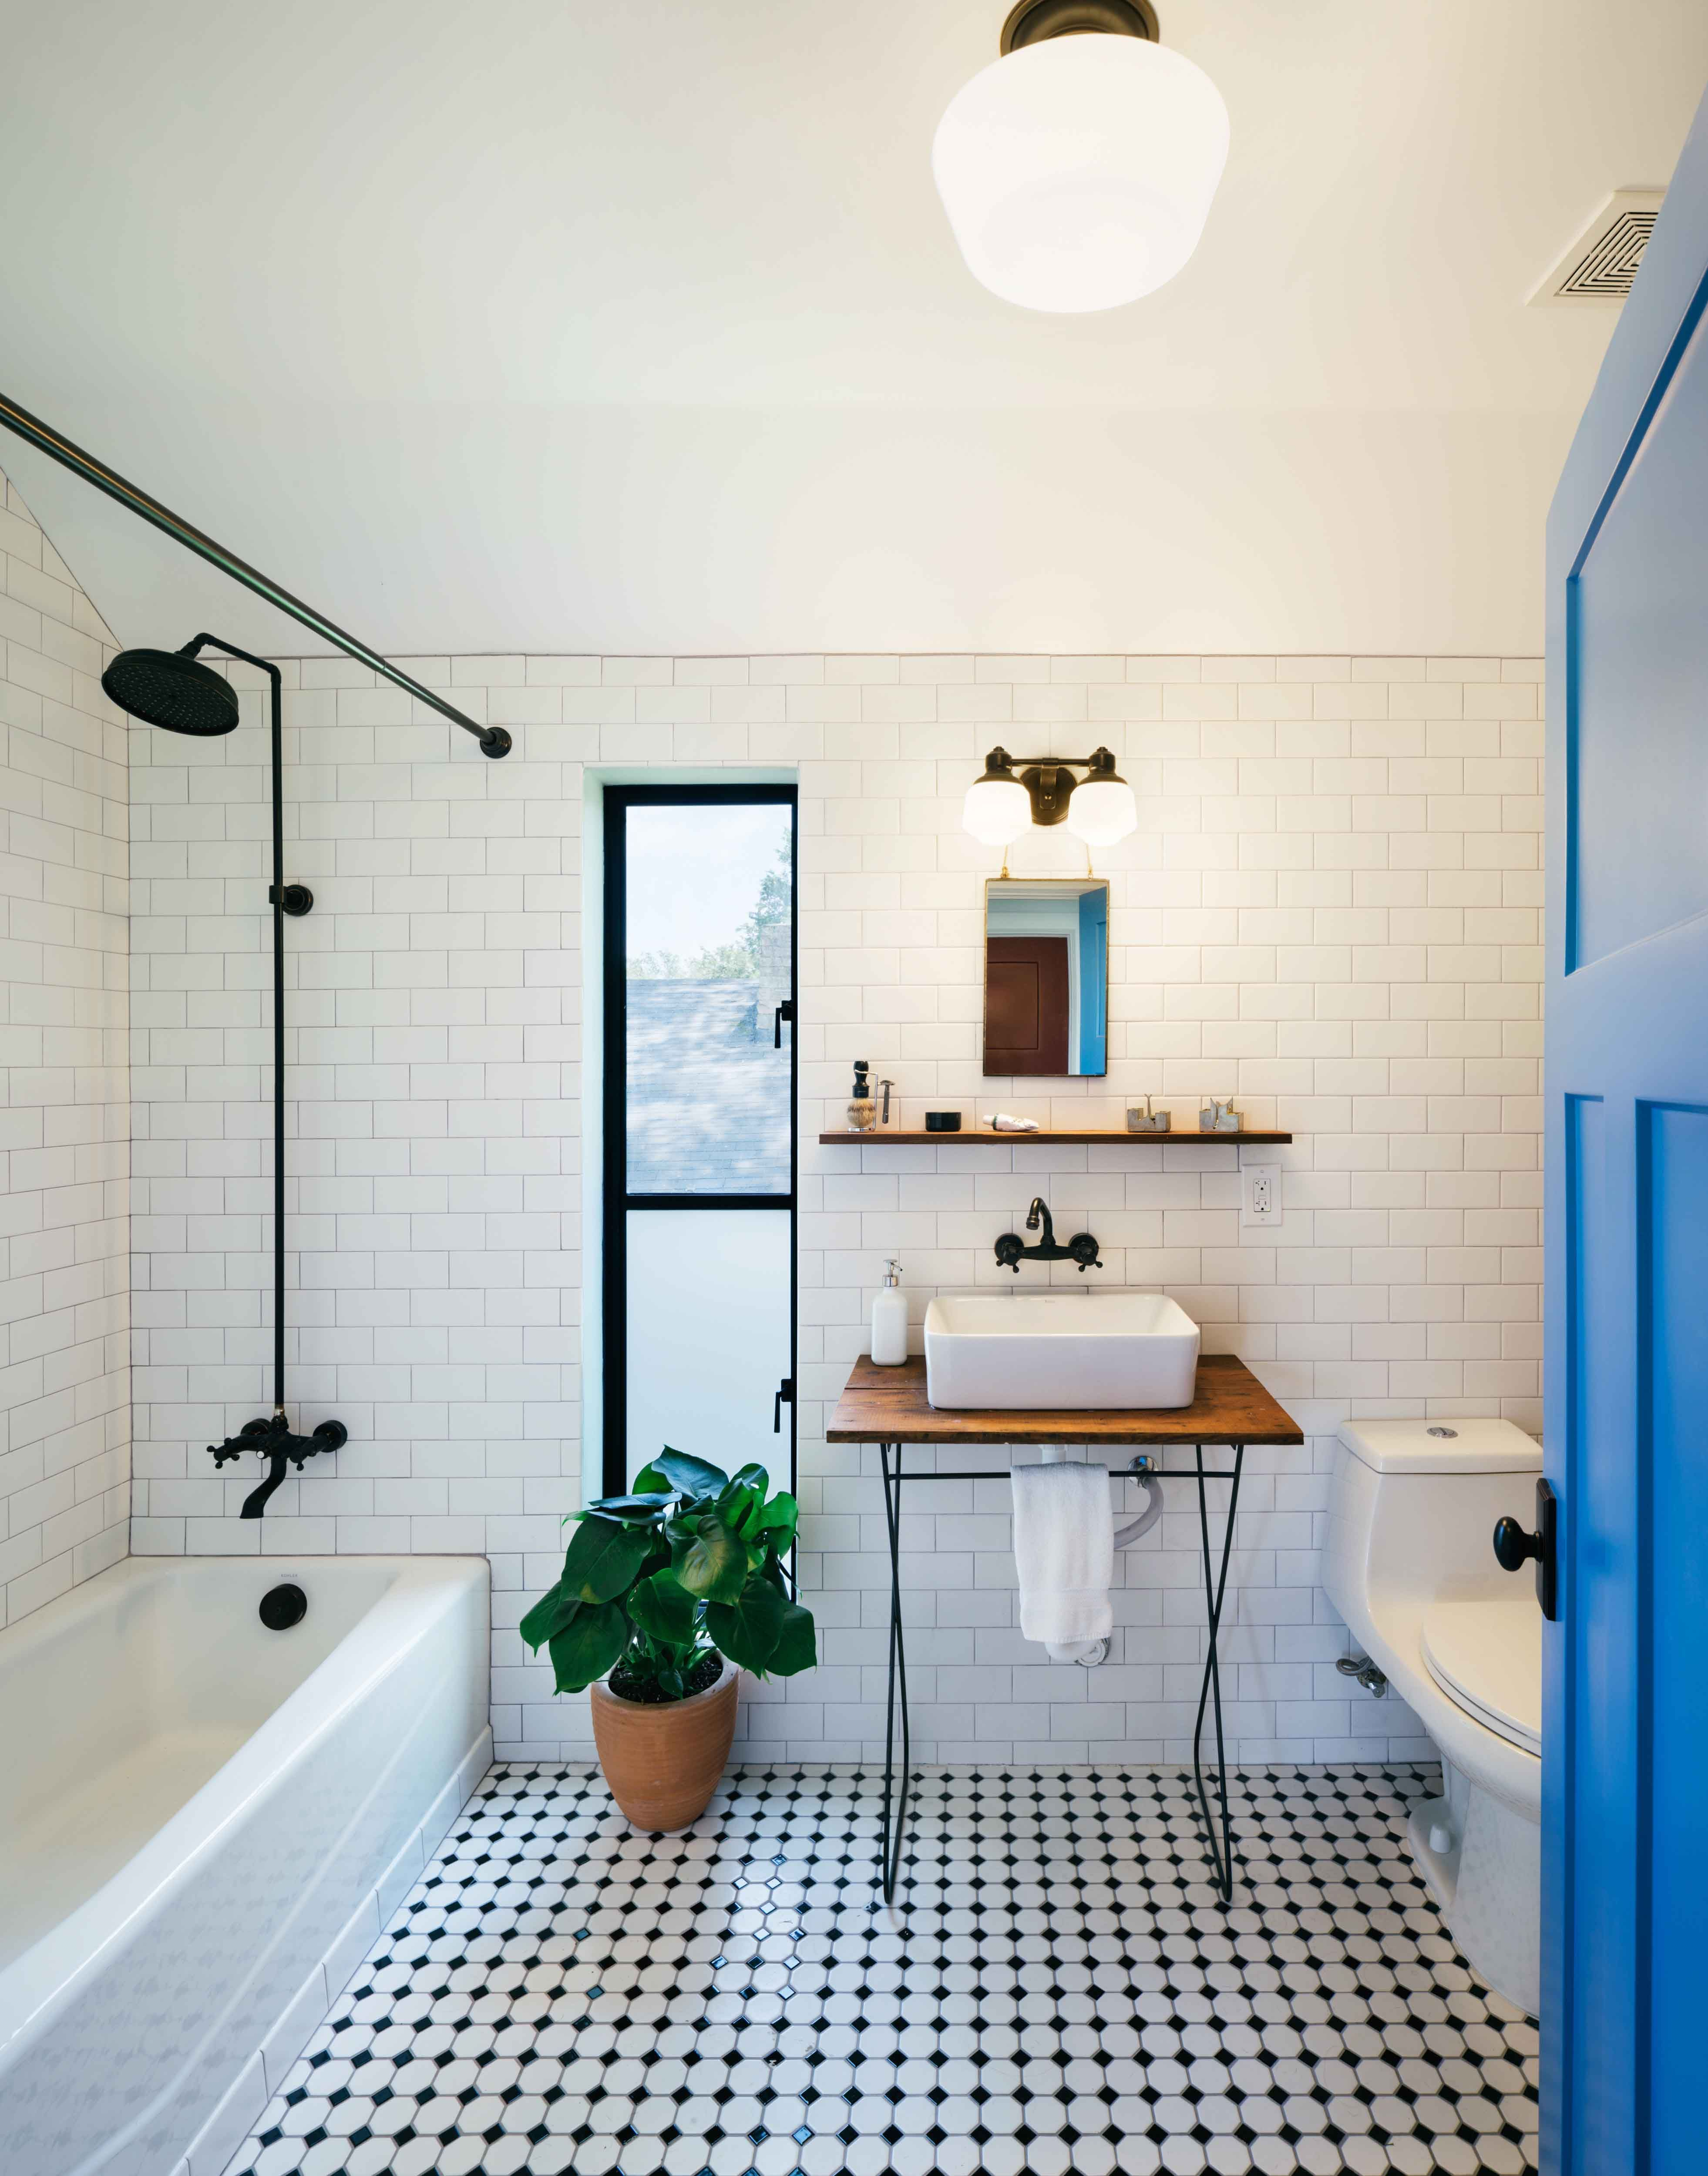 Slideshow 5 White Subway Tile Ideas For The Kitchen Or Bathroom Bathrooms Remodel Bathroom Interior Bathroom Design